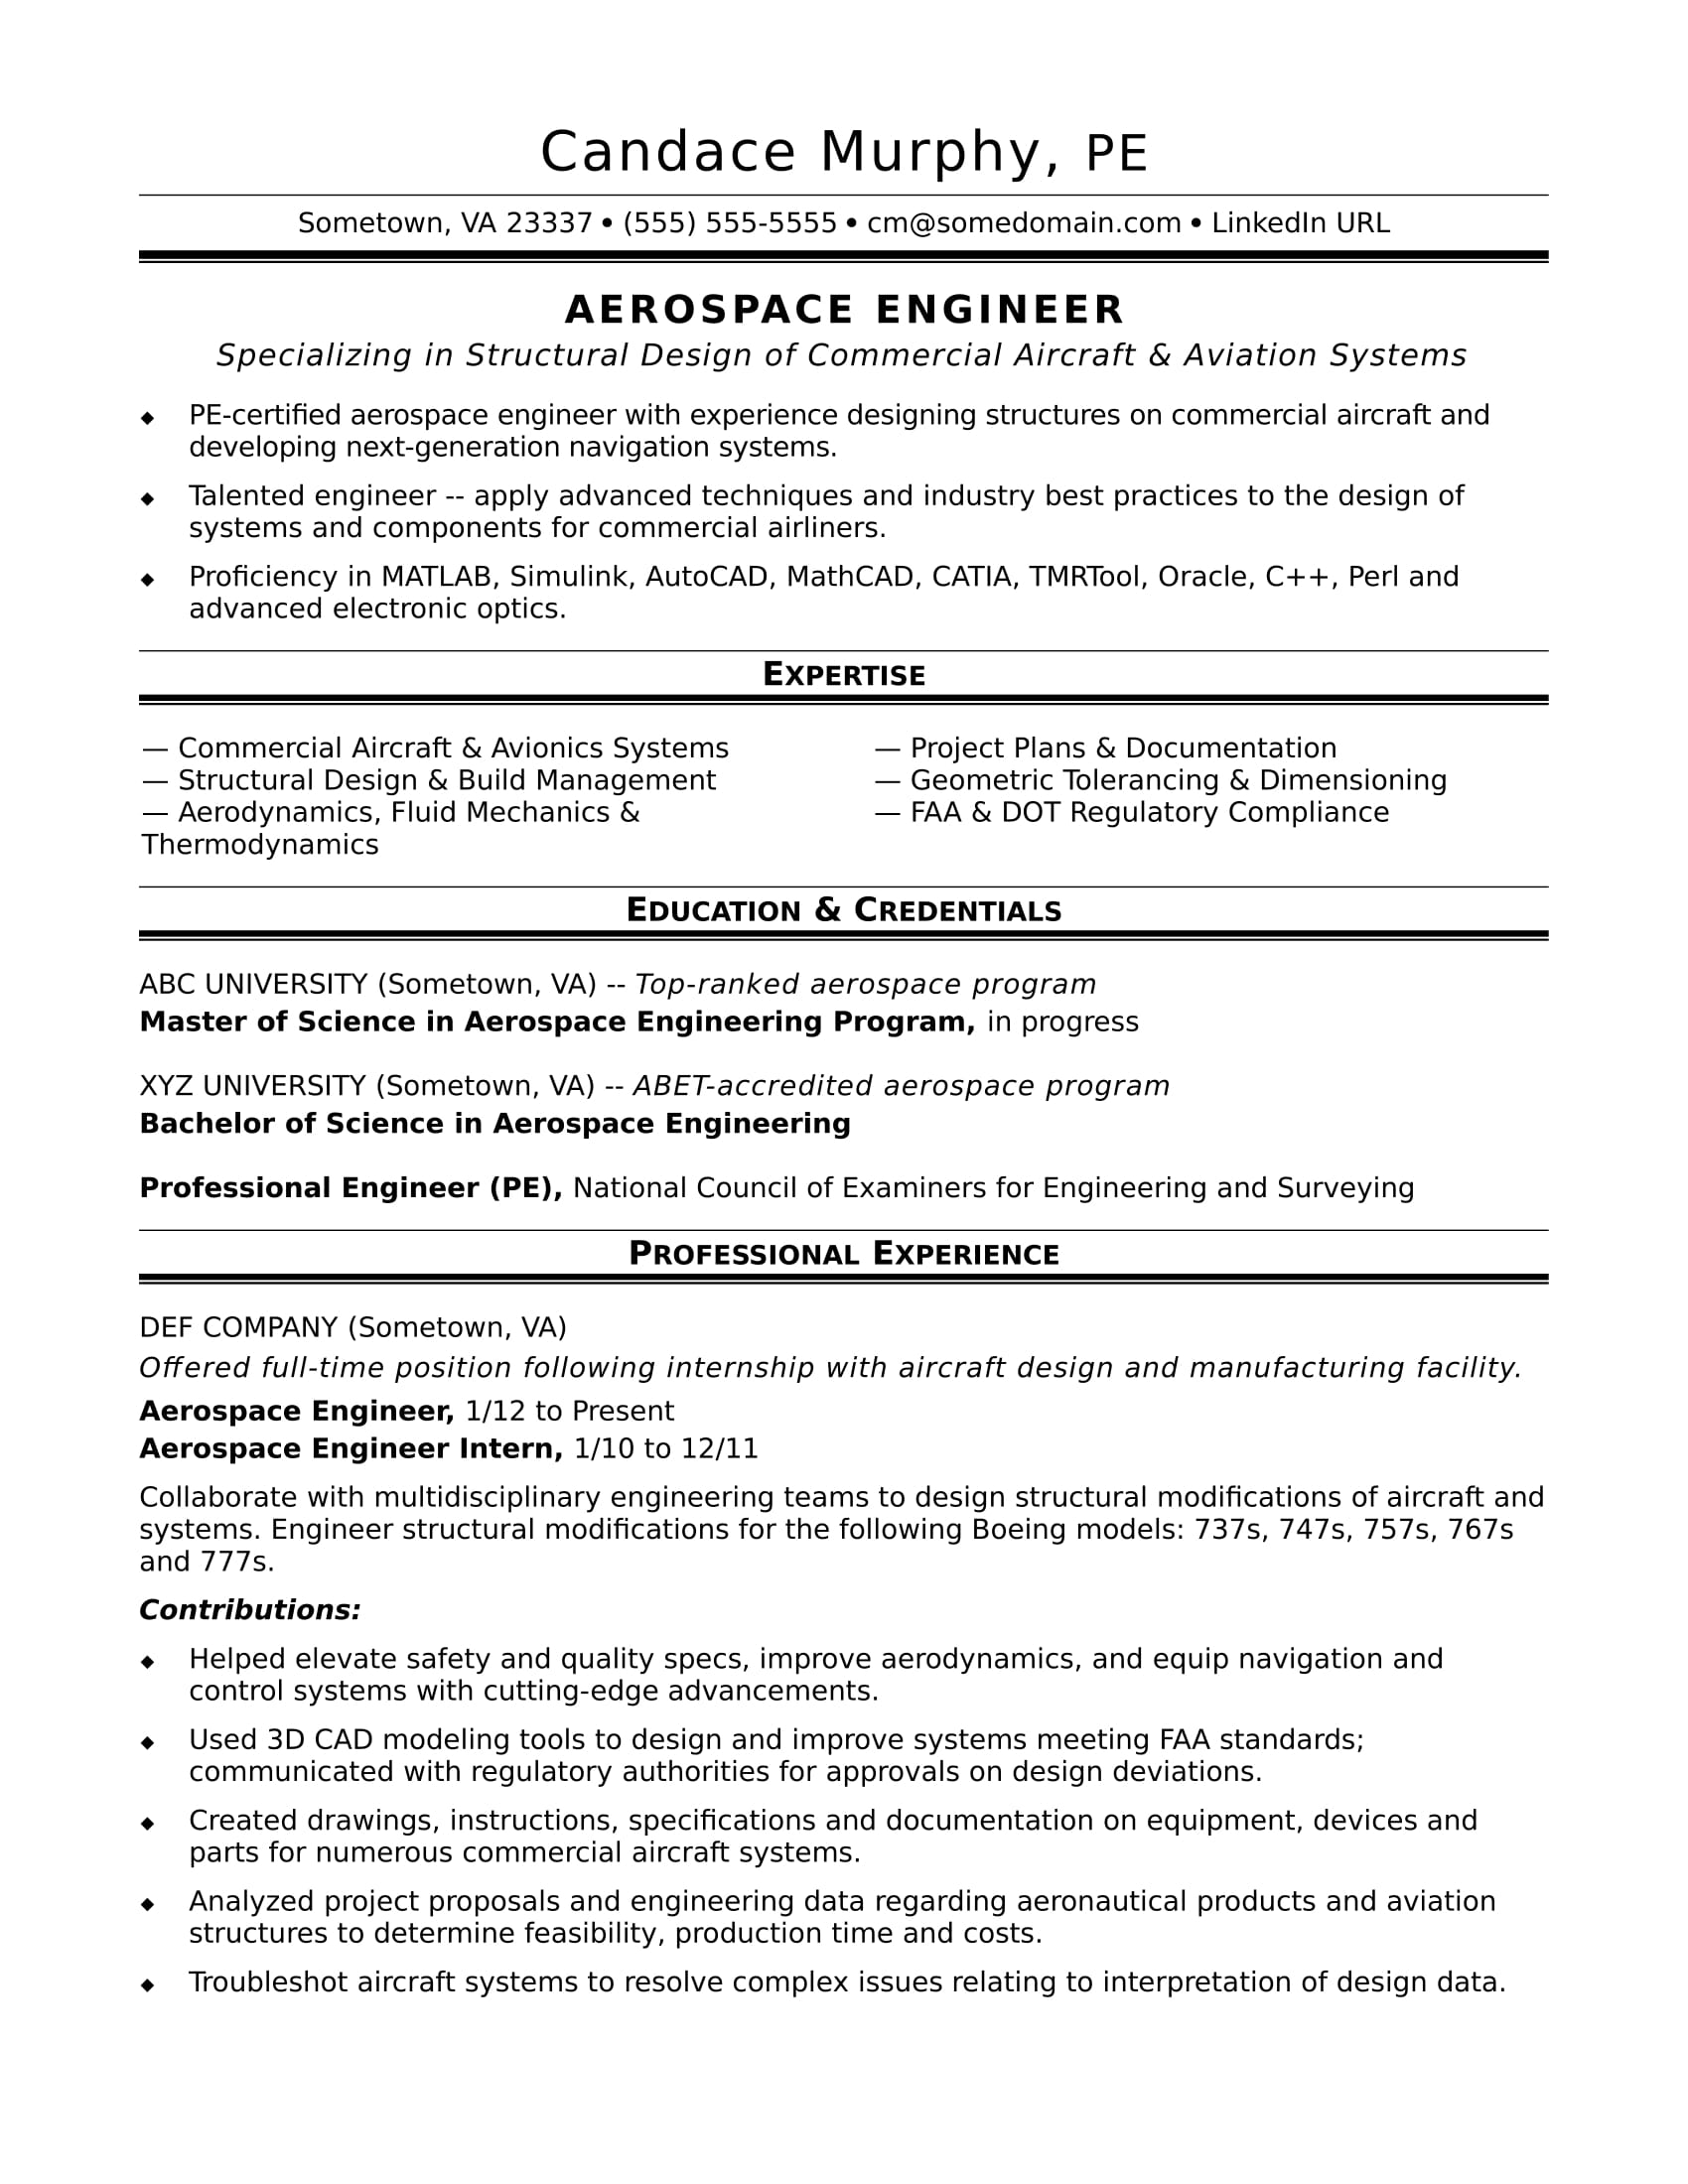 Sample Resume For A Midlevel Aerospace Engineer Monster Com